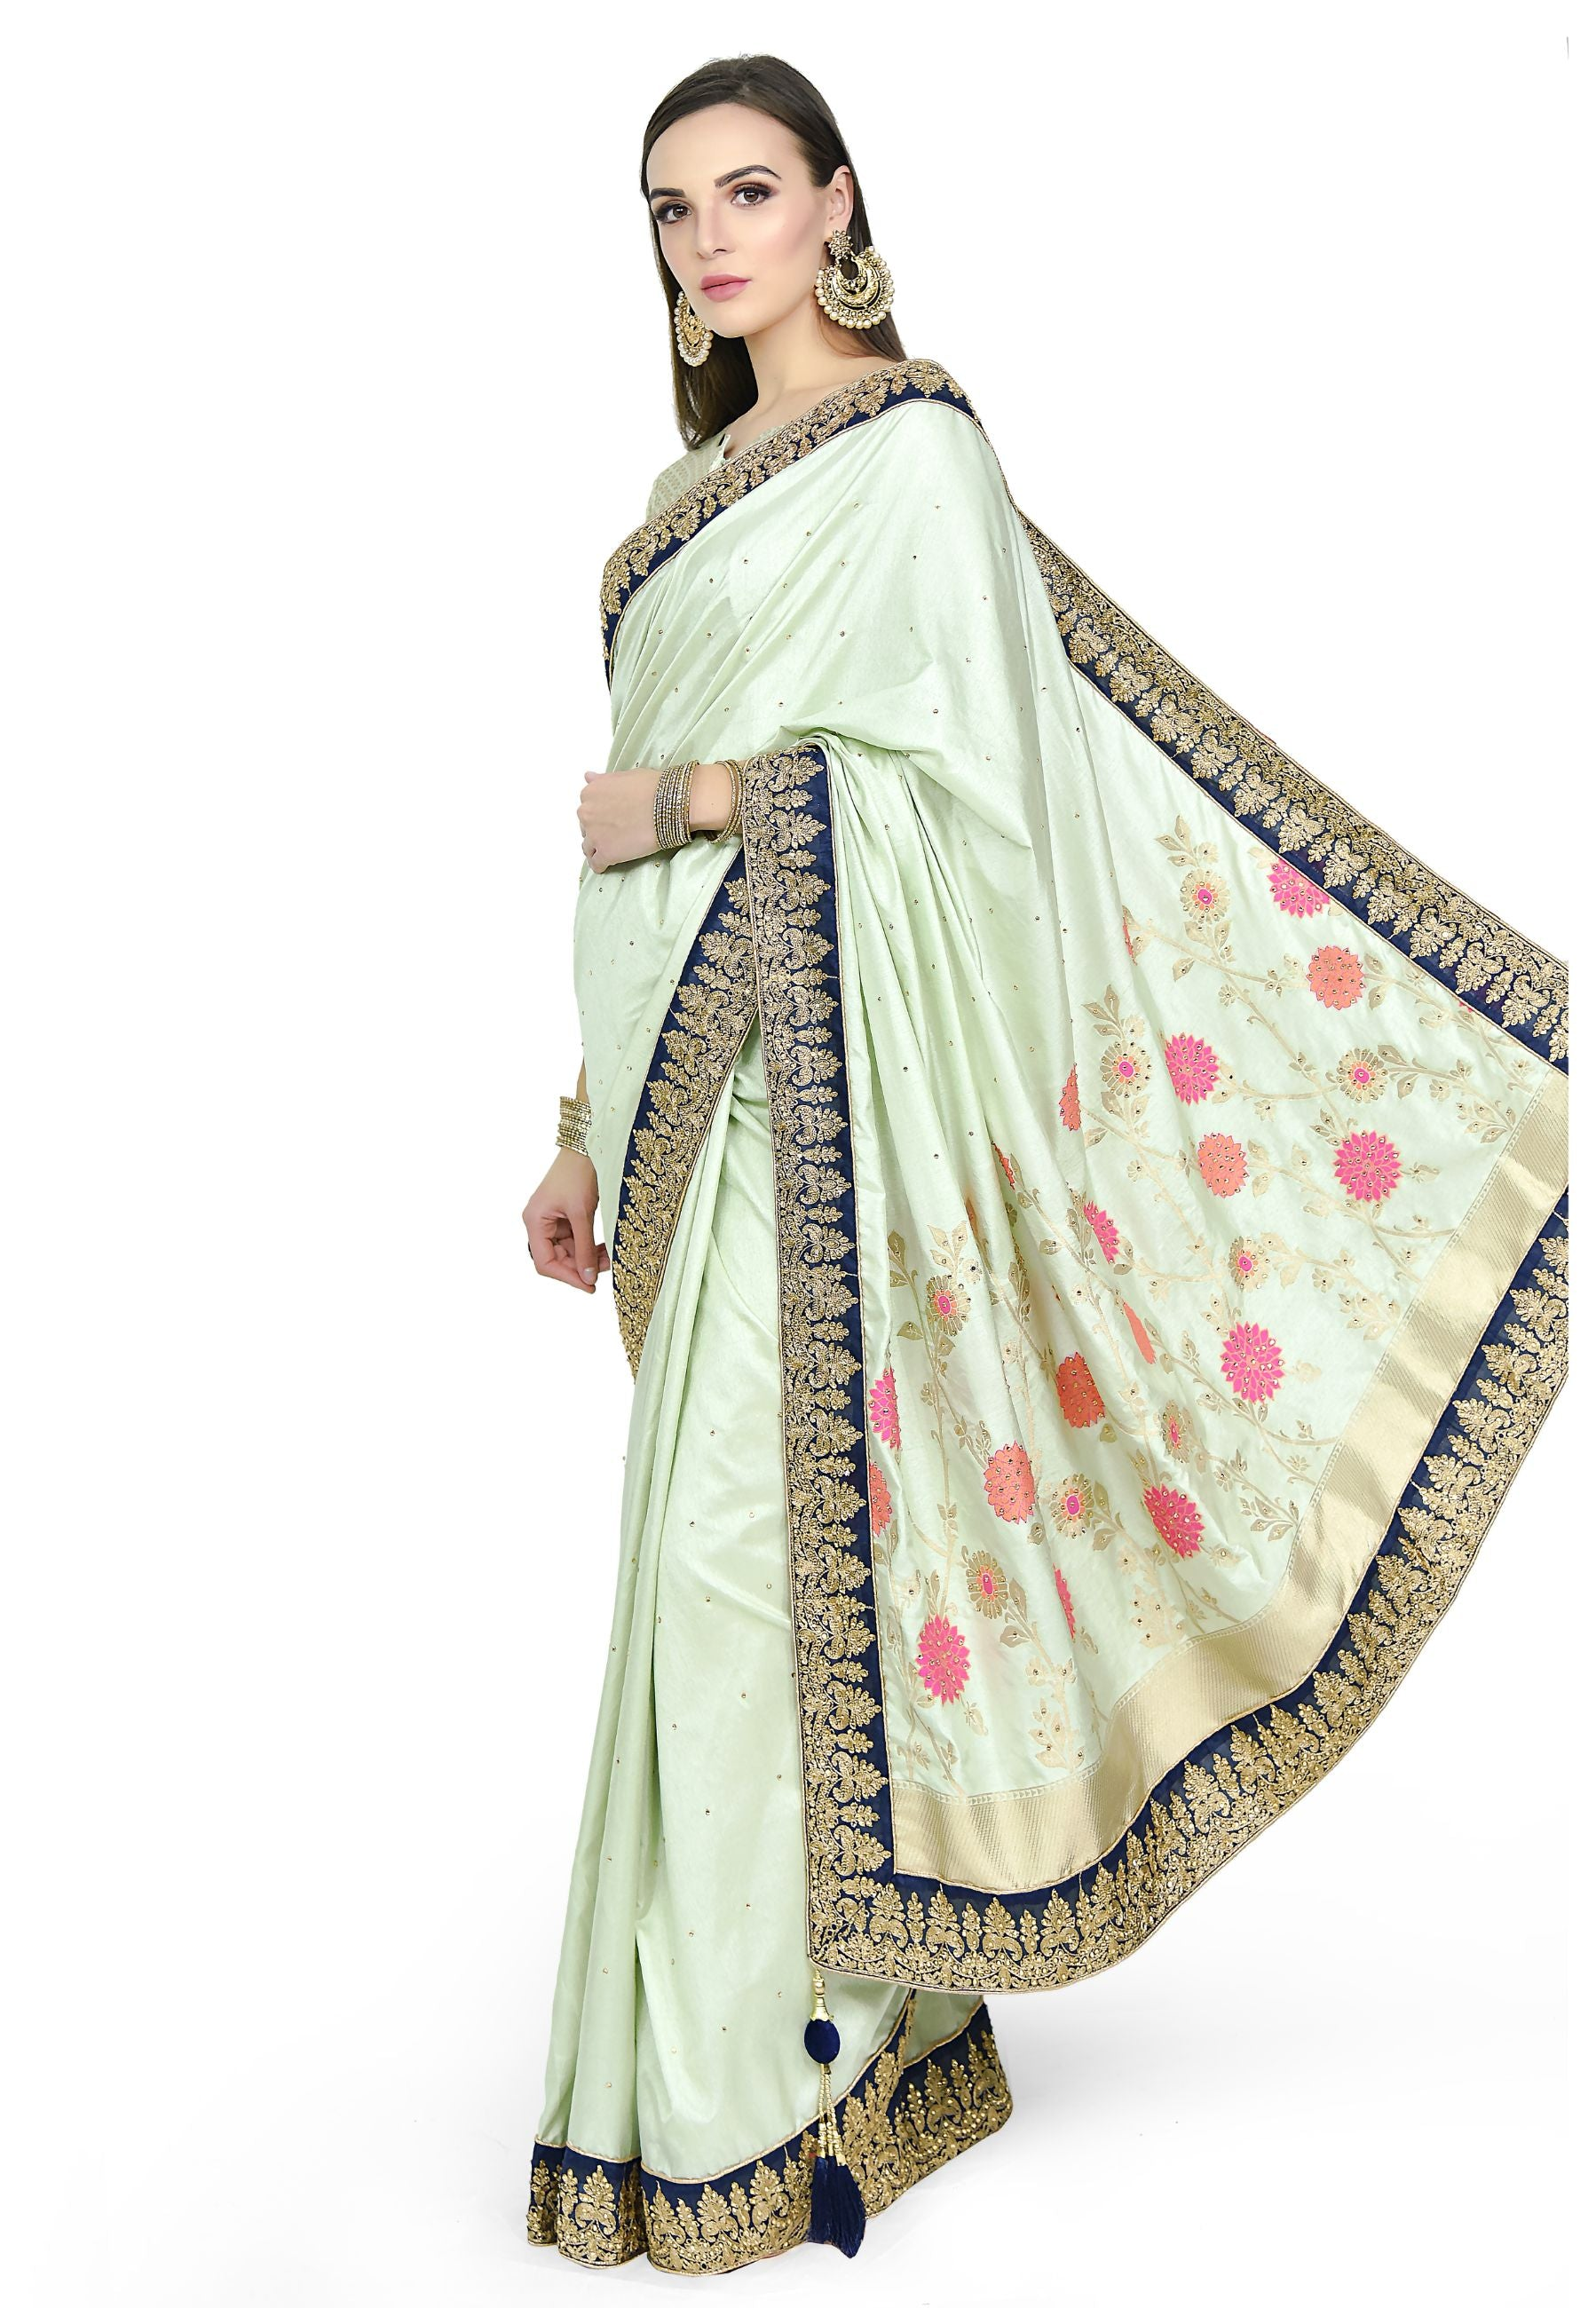 COOL MINT SAREE - Chahat